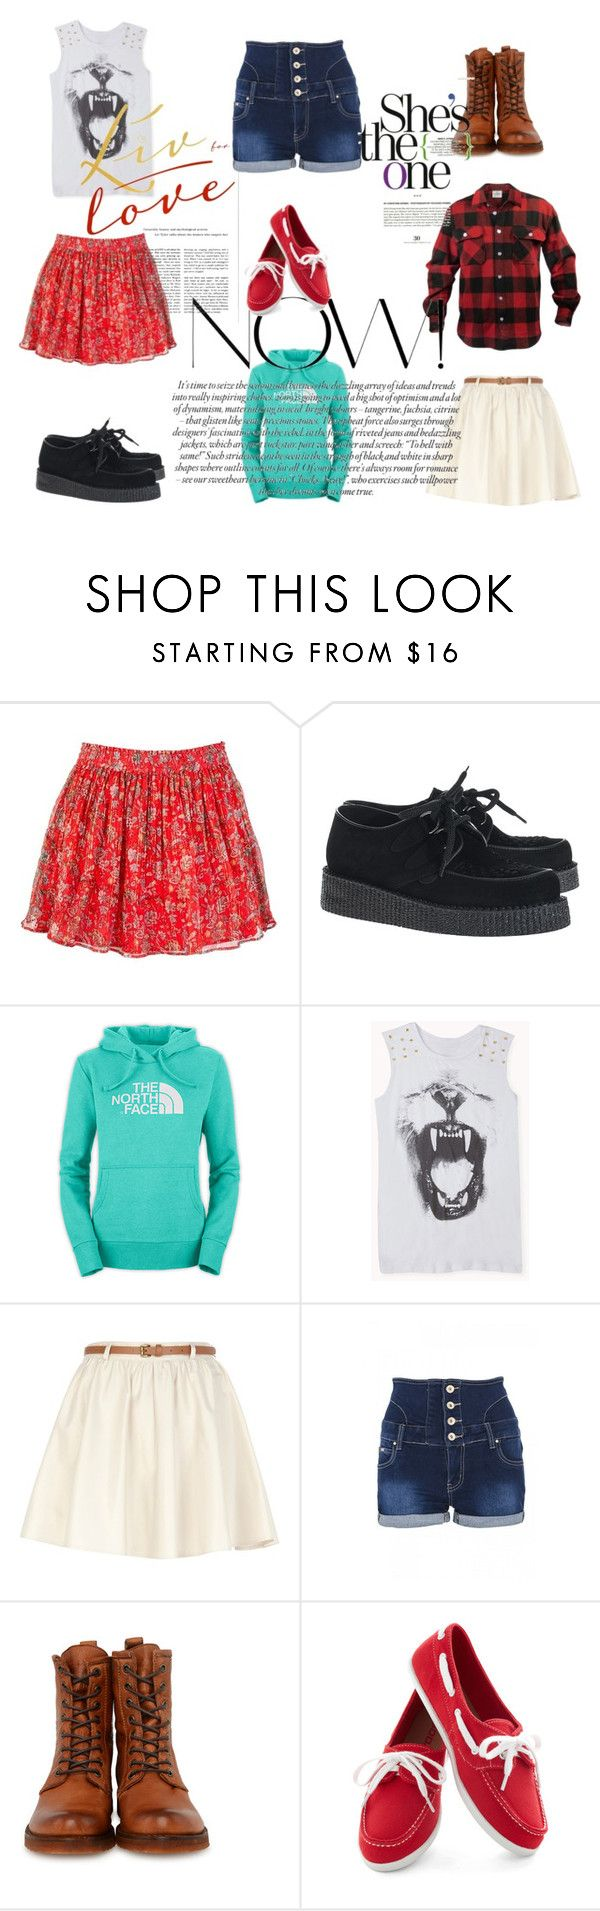 Casual by clarairawan on Polyvore featuring Forever 21, Jack Wills, Quiz, River Island, Underground and Frye